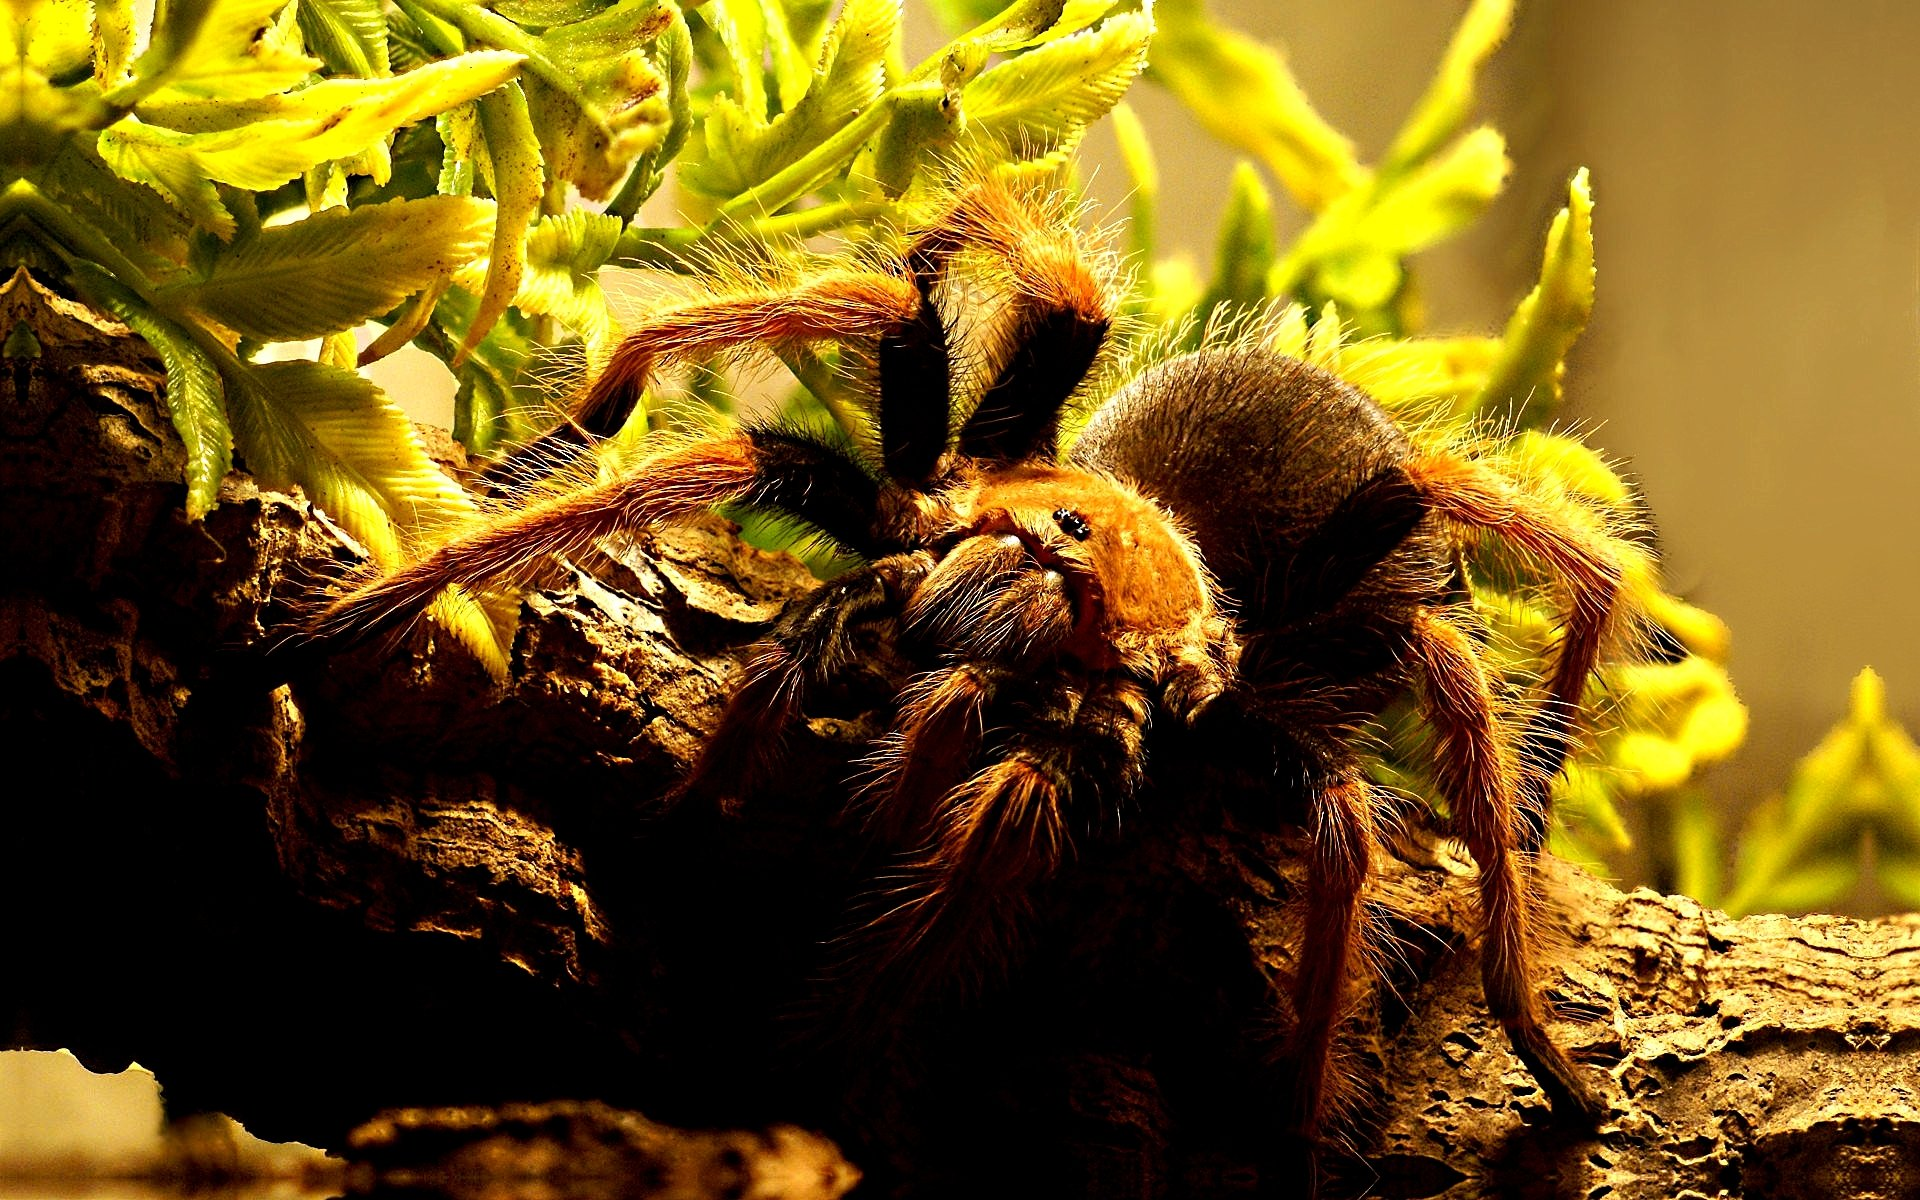 Download hd 1920x1200 Tarantula desktop wallpaper ID:409560 for free